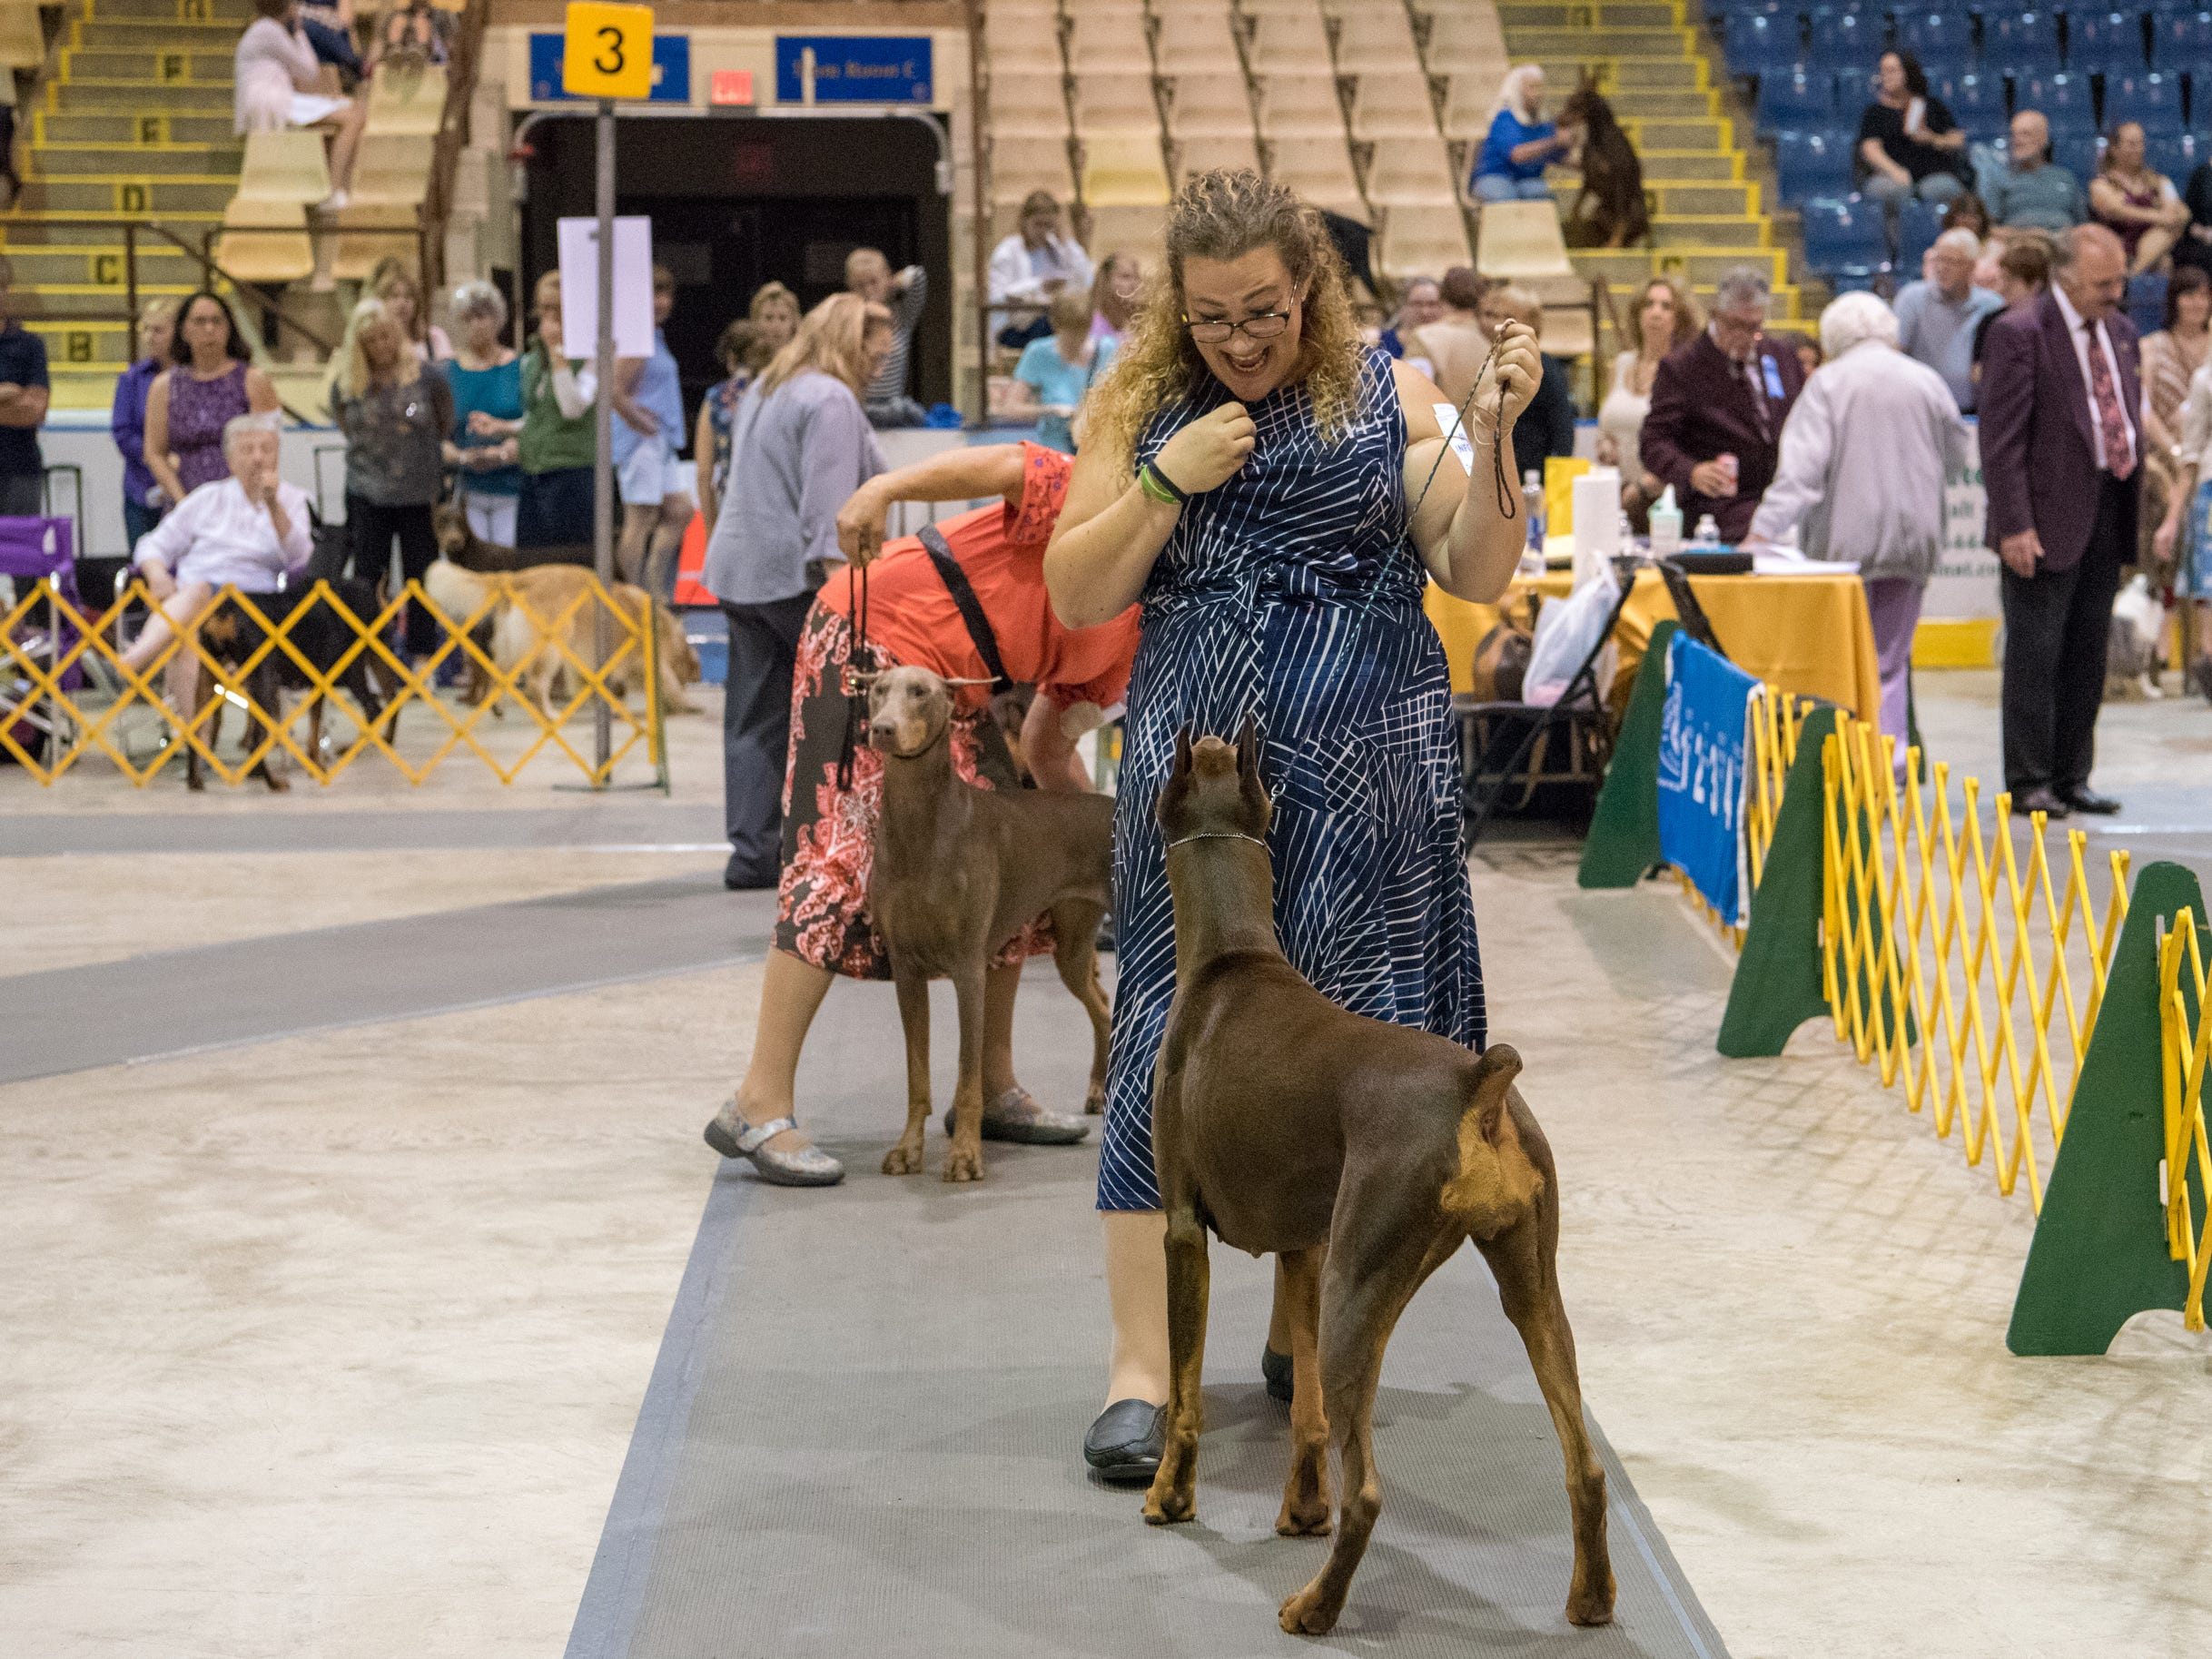 Handler Carissa DeMilta-Shimpeno gets the attention of her Doberman Pinscher during the Sussex Hills Kennel Club All-Breed Dog show in Morristown, NJ on Sept. 2, 2018.